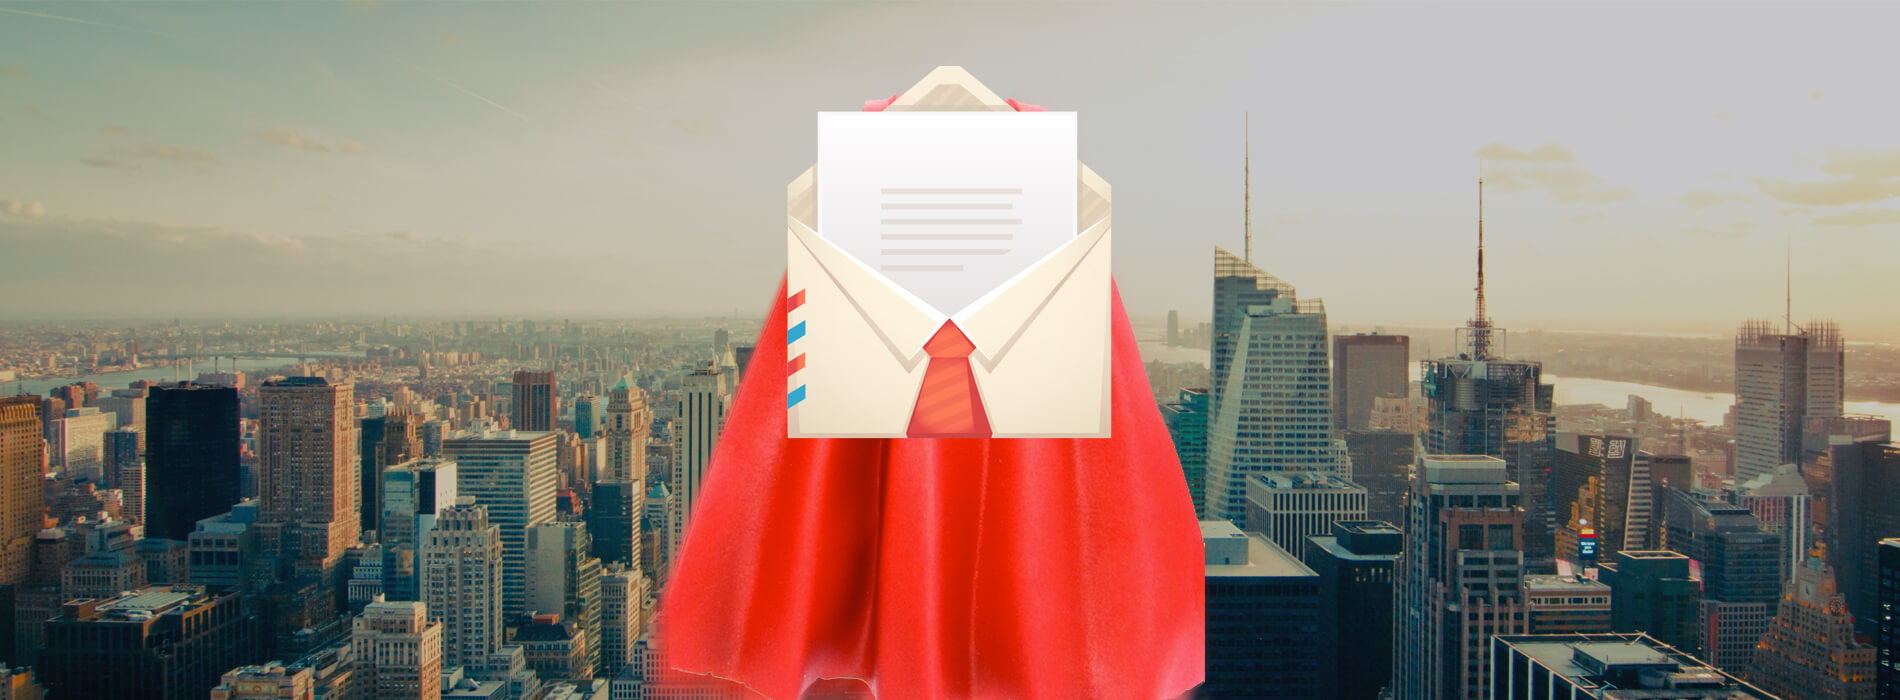 5 Incredibly Effective Ways to Improve Your Email